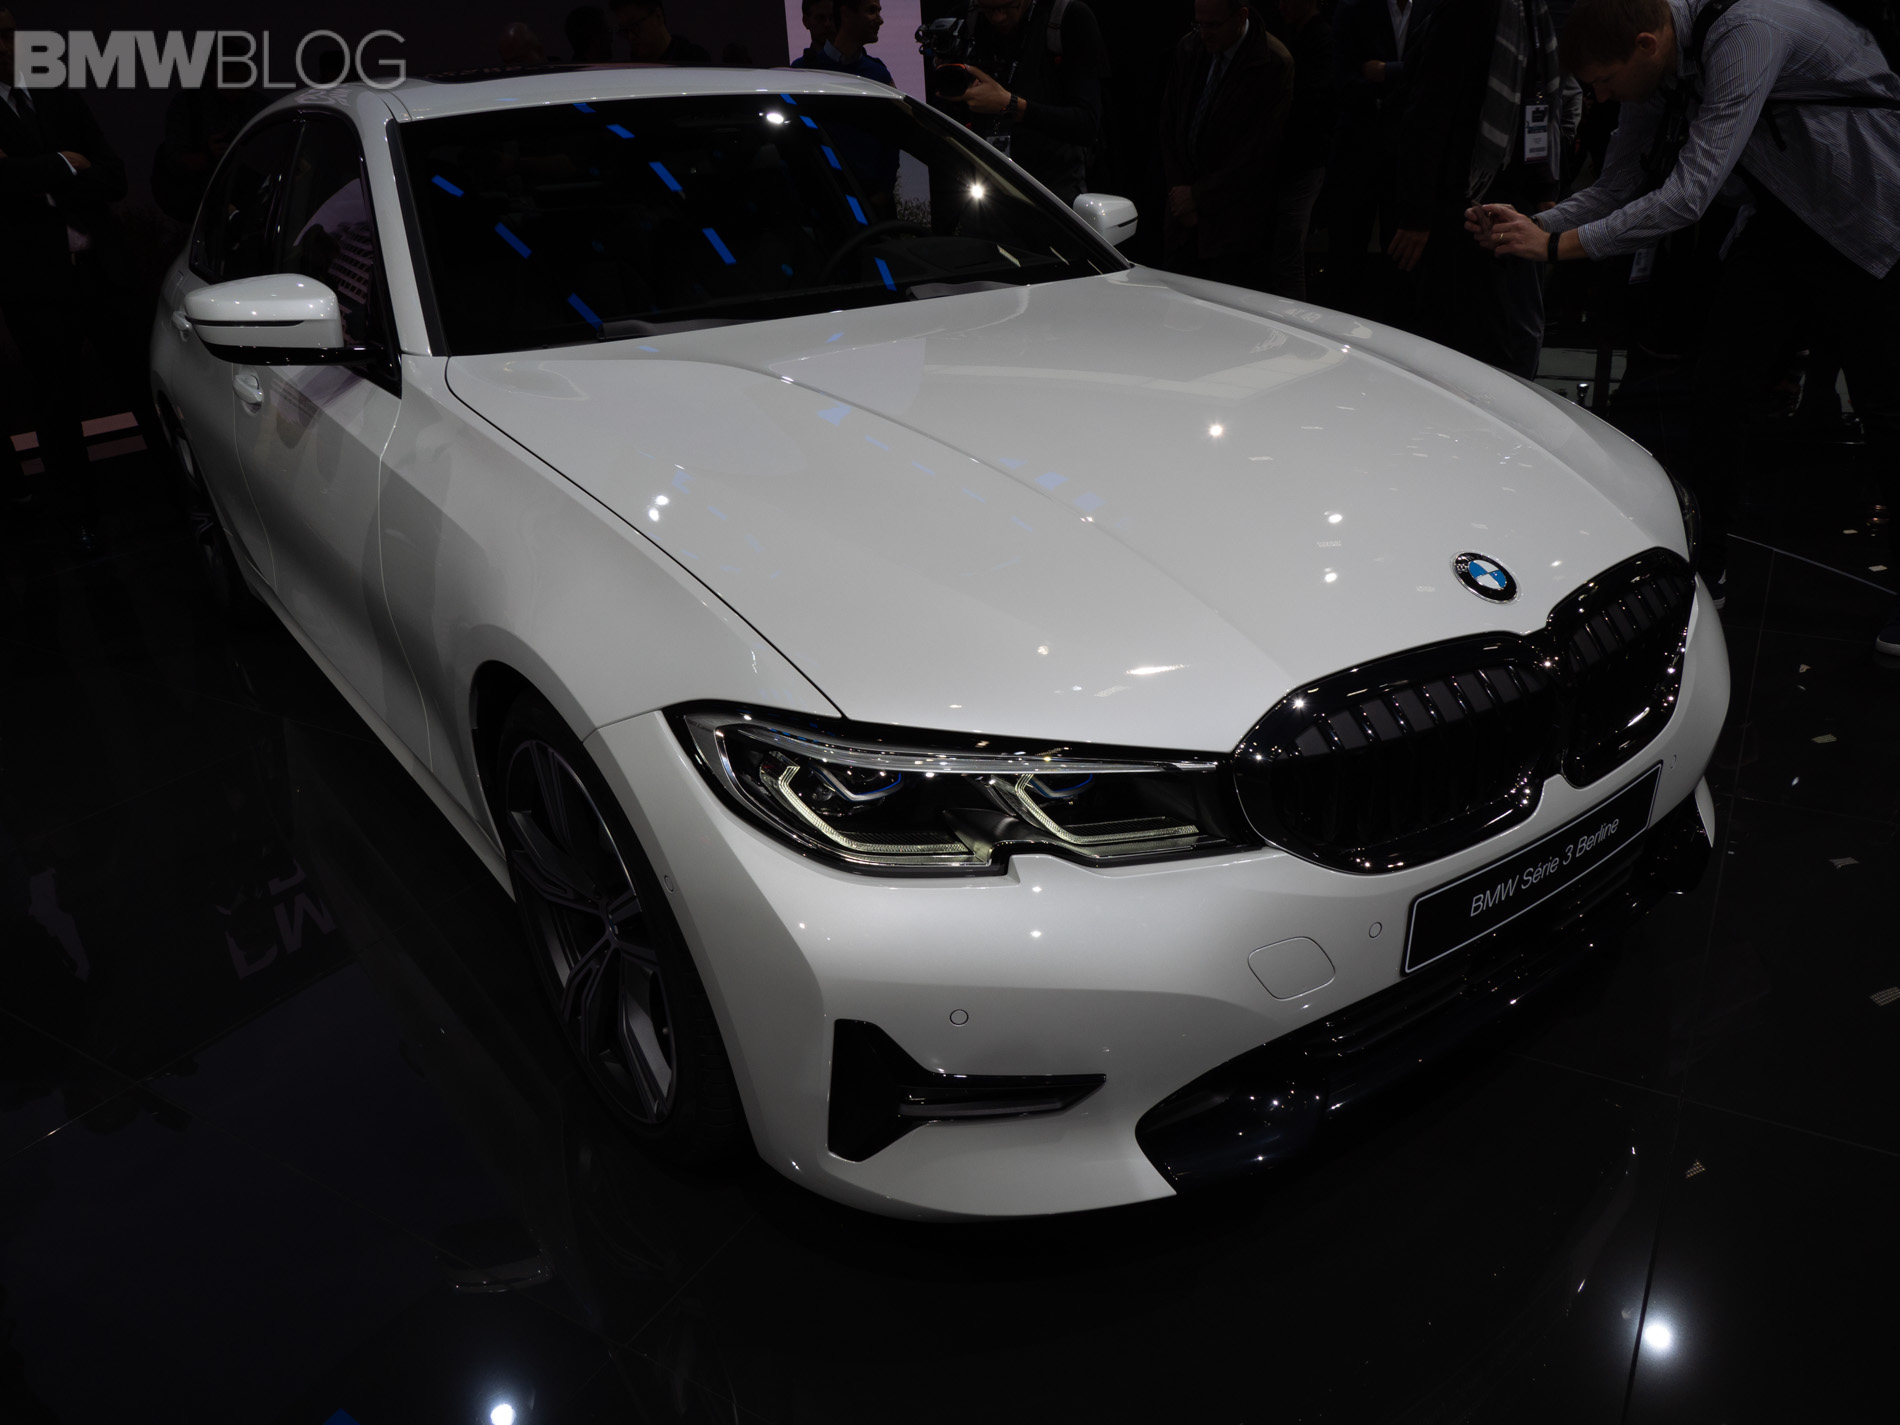 2019 BMW 3 Series Paris Motor Show 6